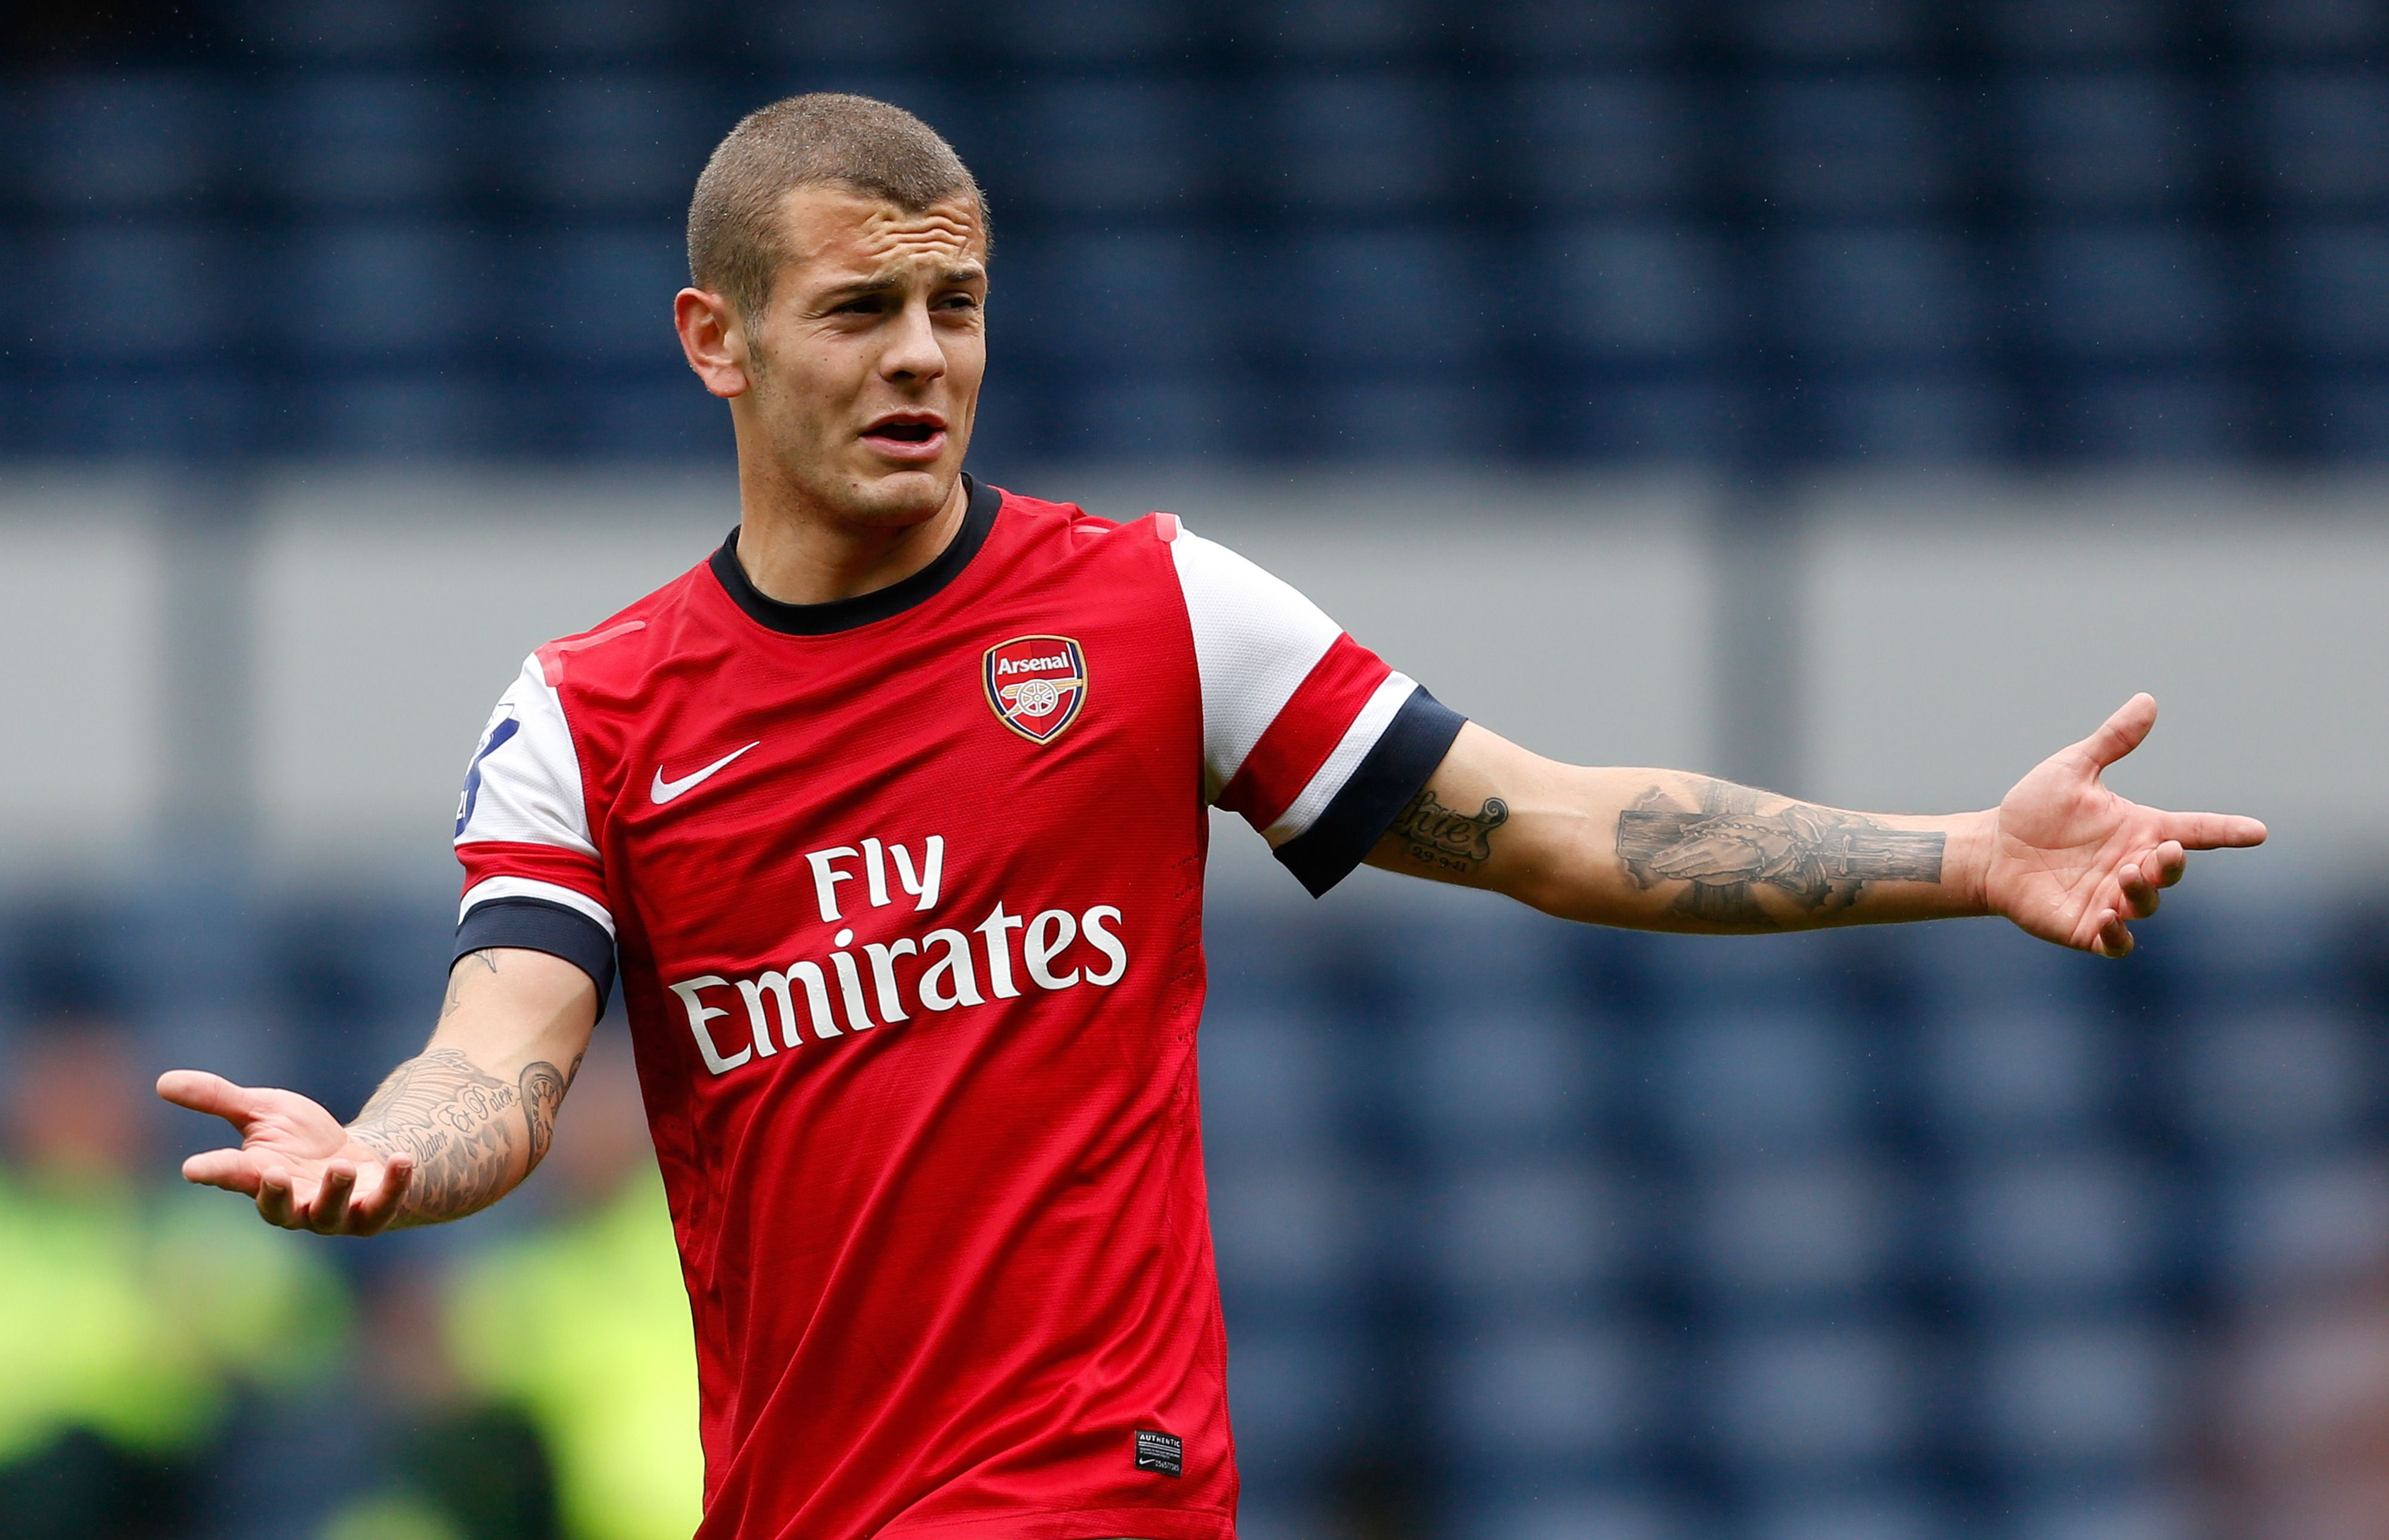 Jack Wilshere HD Wallpapers - New HD Images